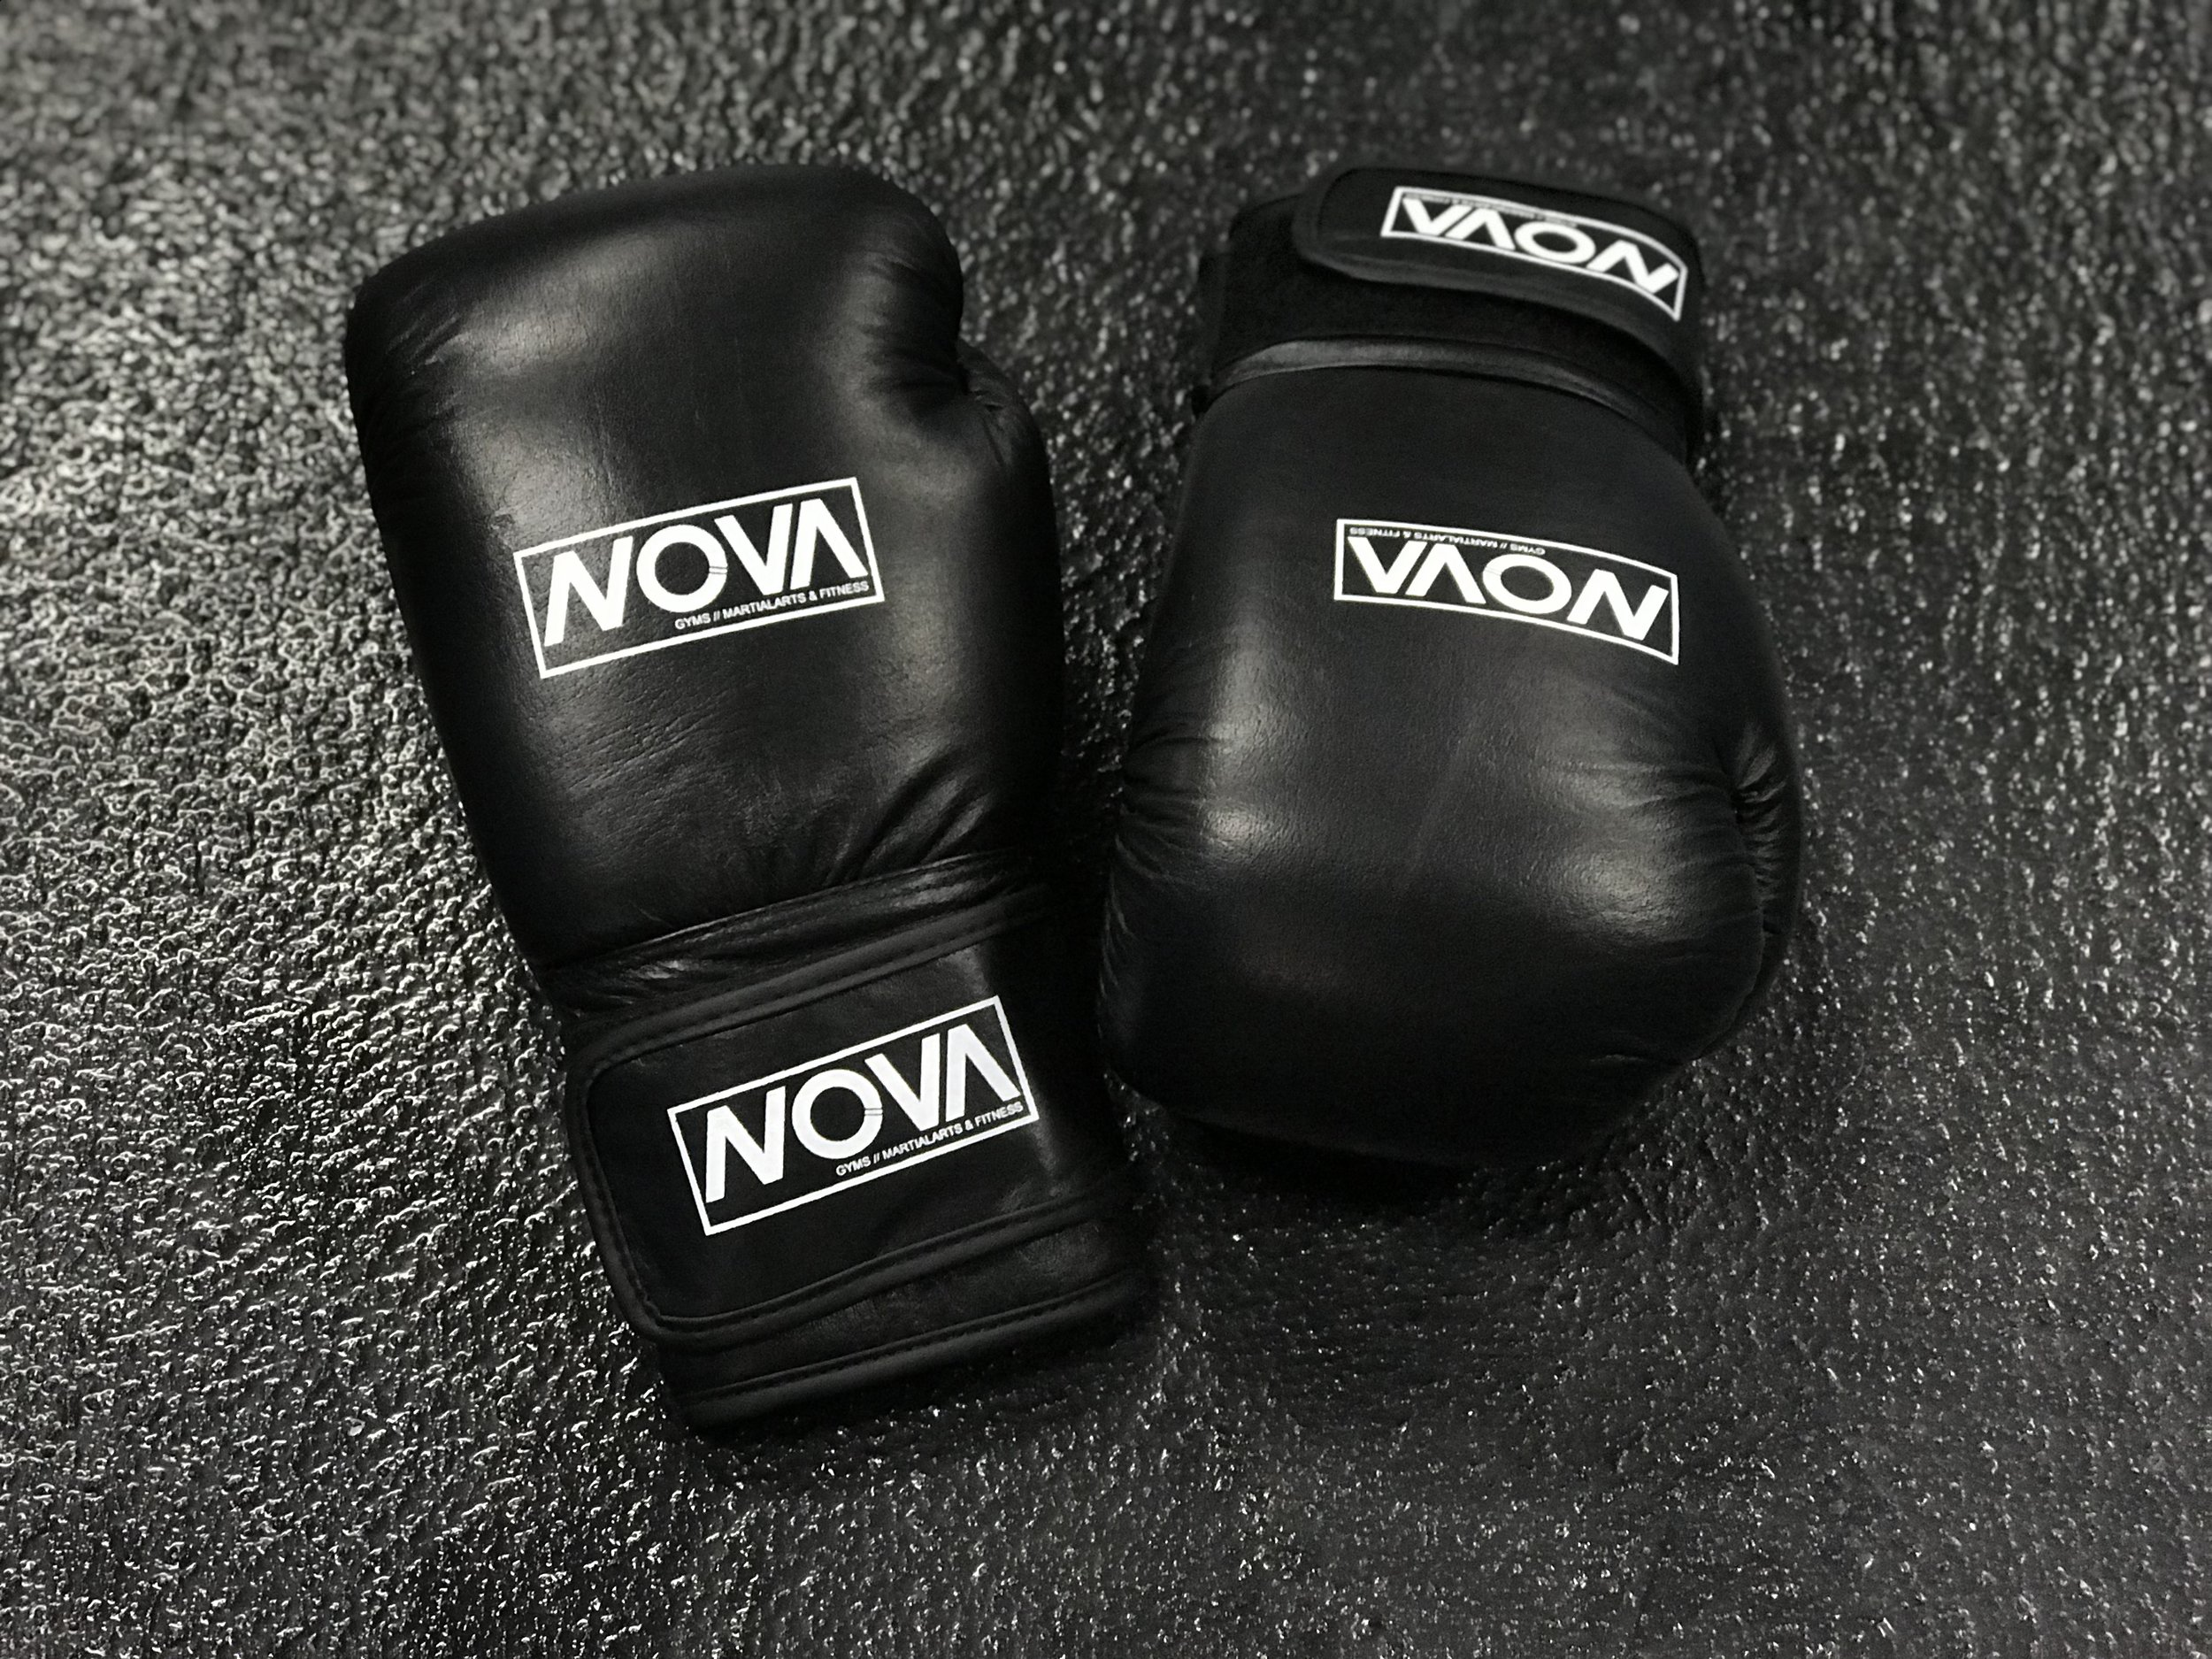 12oz and 16oz Boxing Gloves